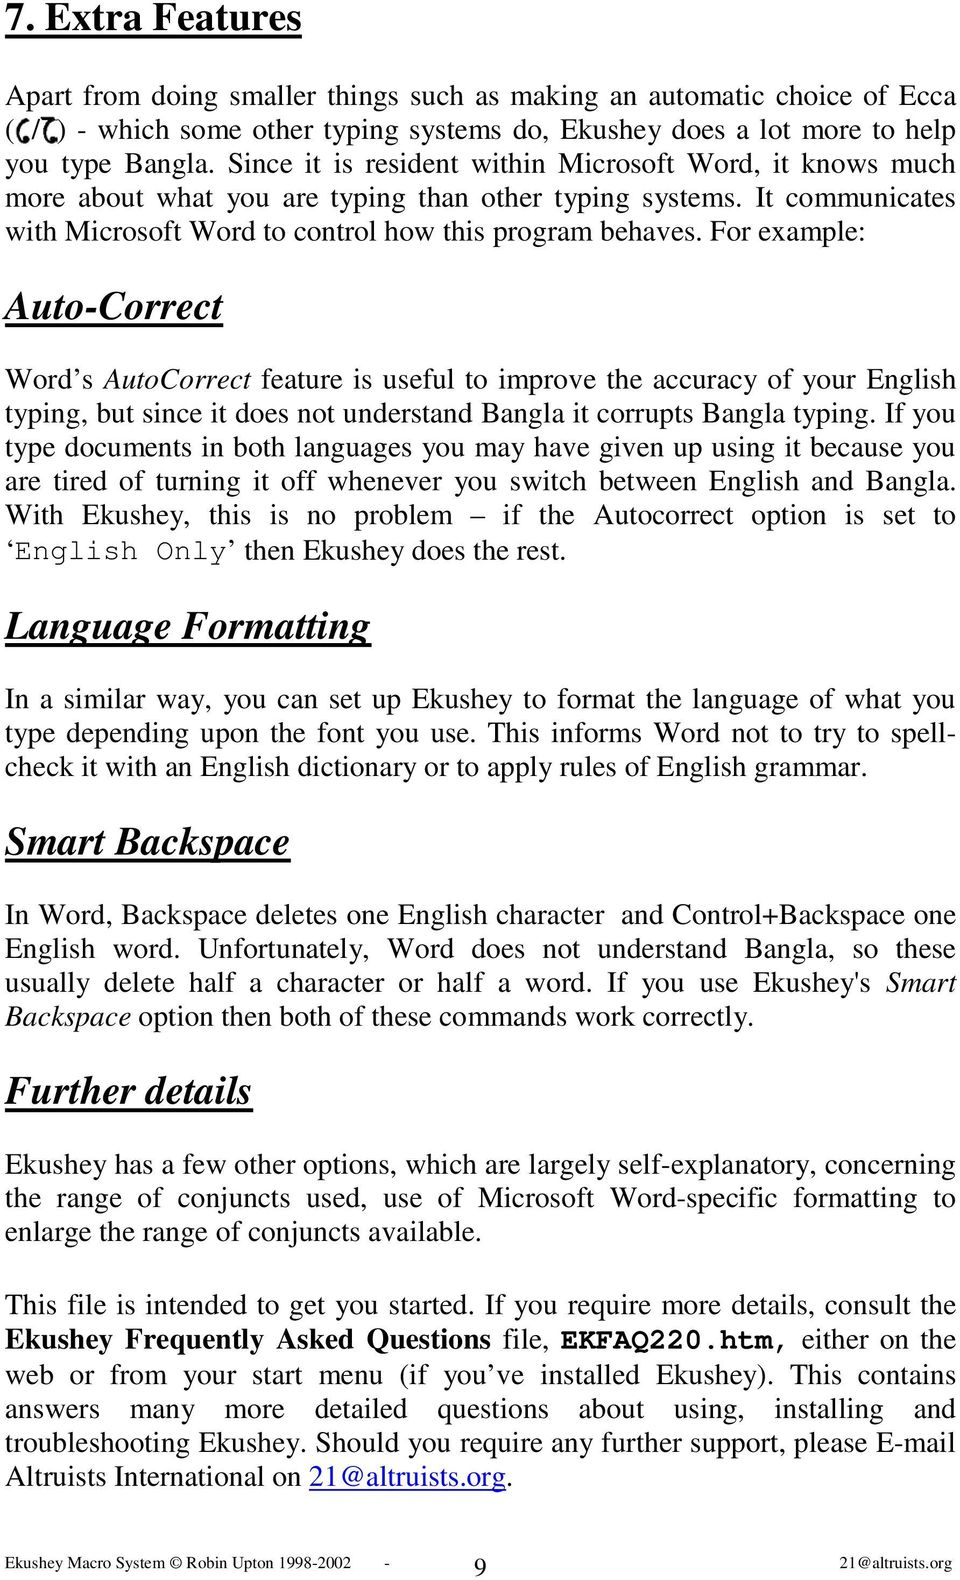 Easy Bangla Typing for MS-Word! - PDF